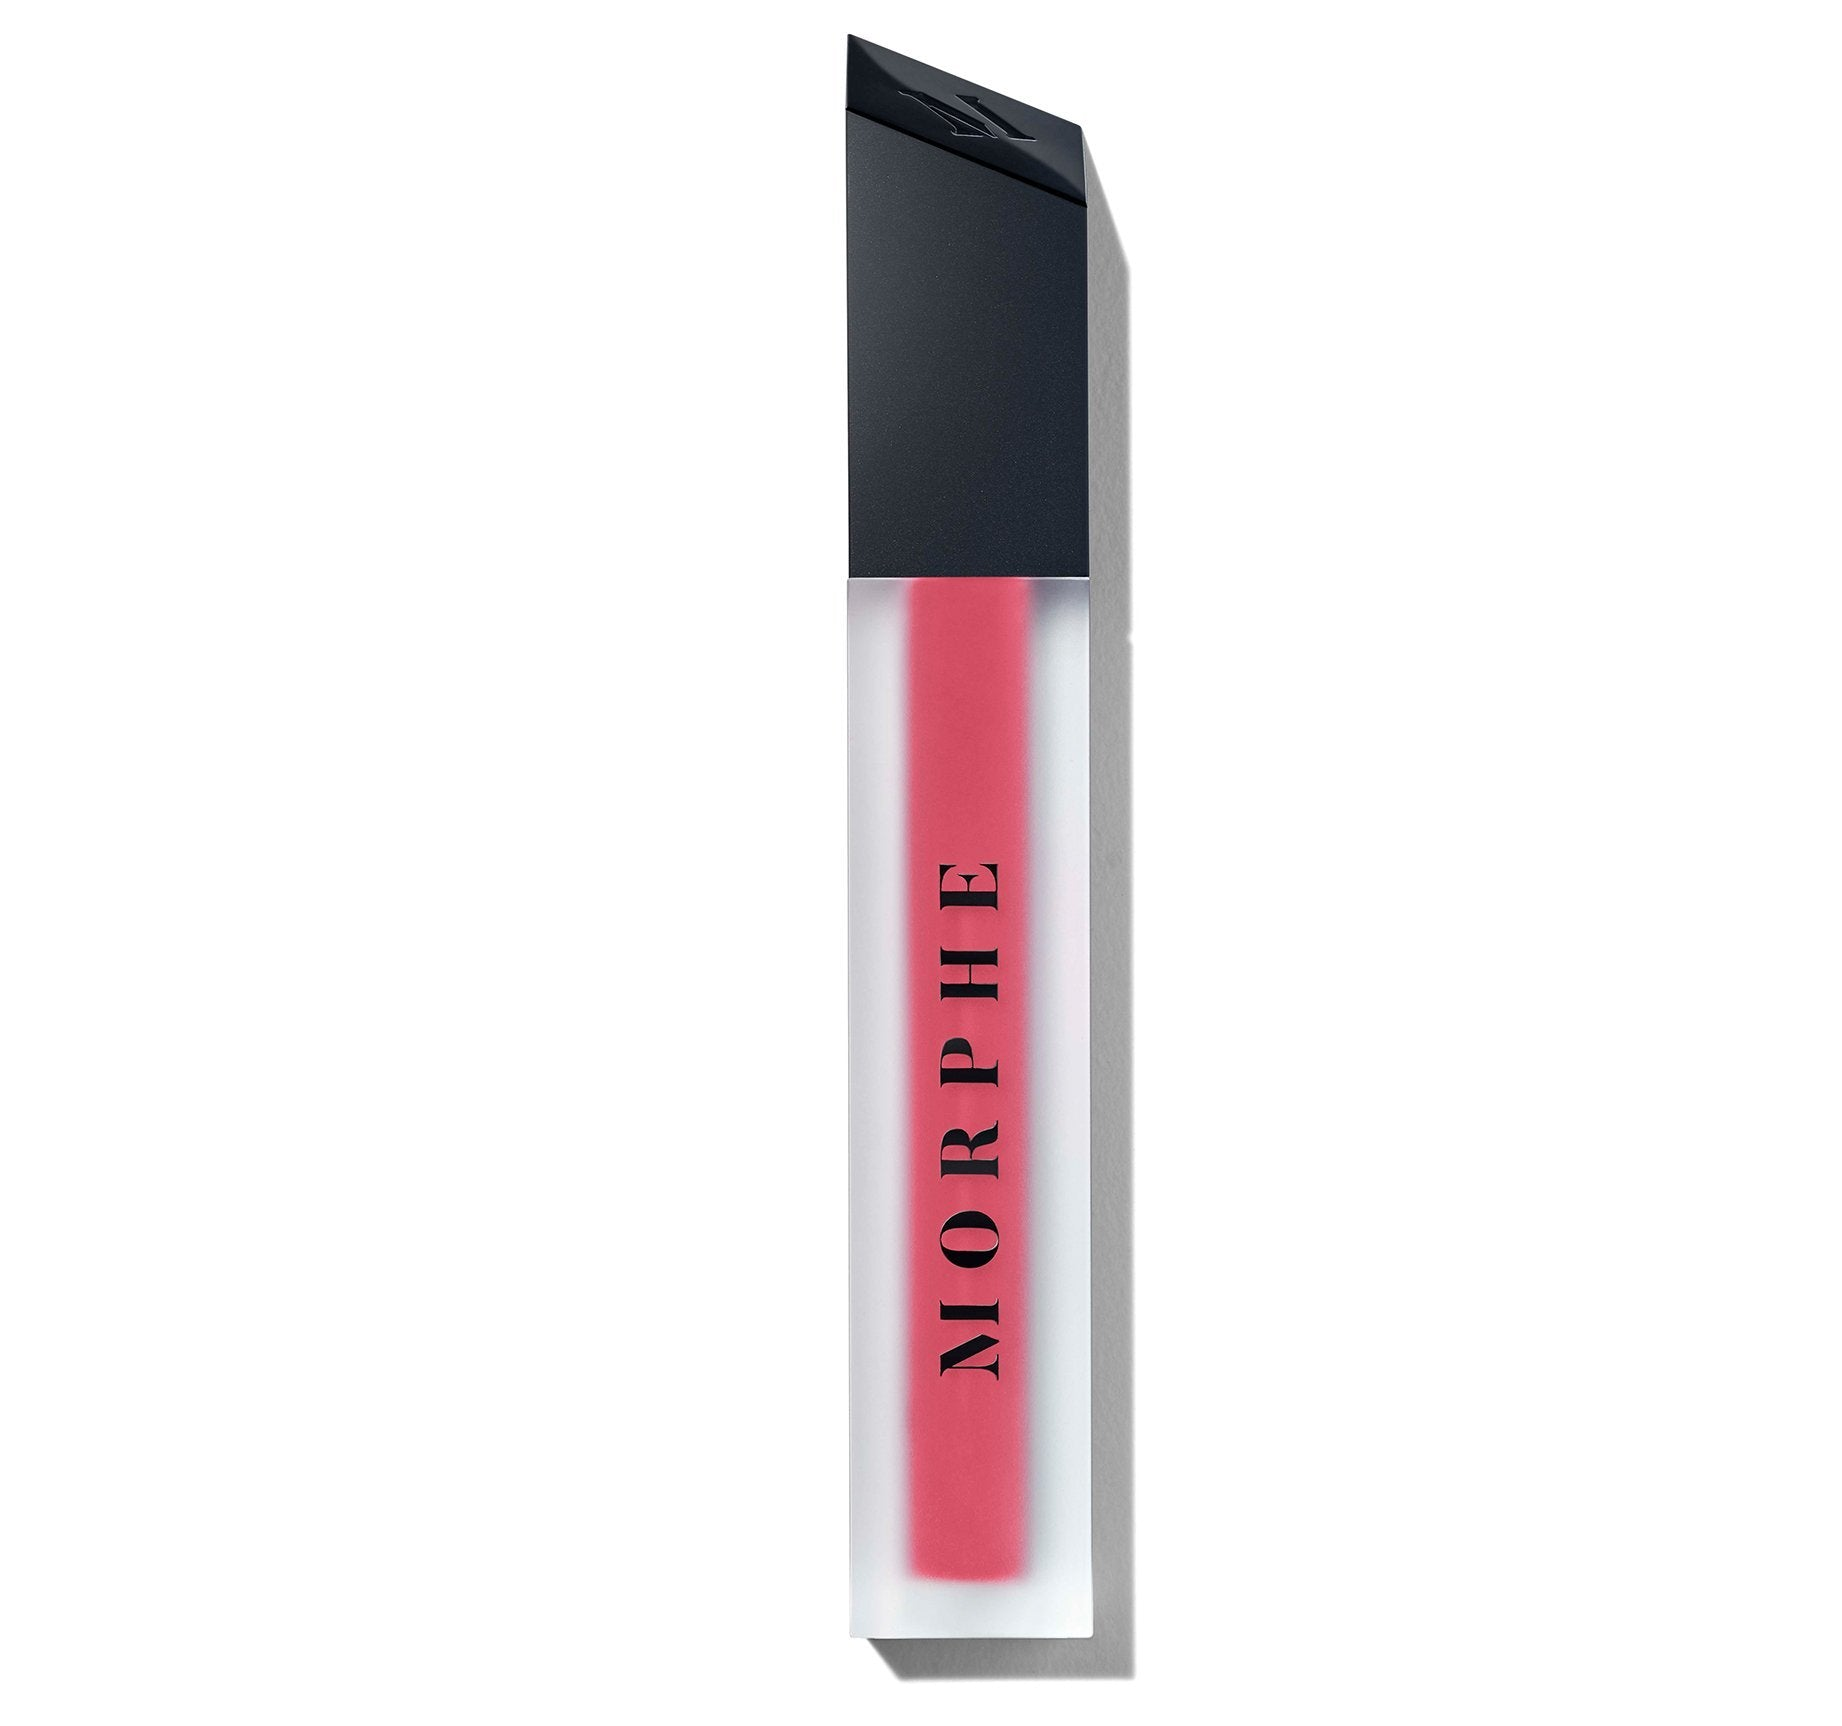 MATTE LIQUID LIPSTICK - PHATTY, view larger image